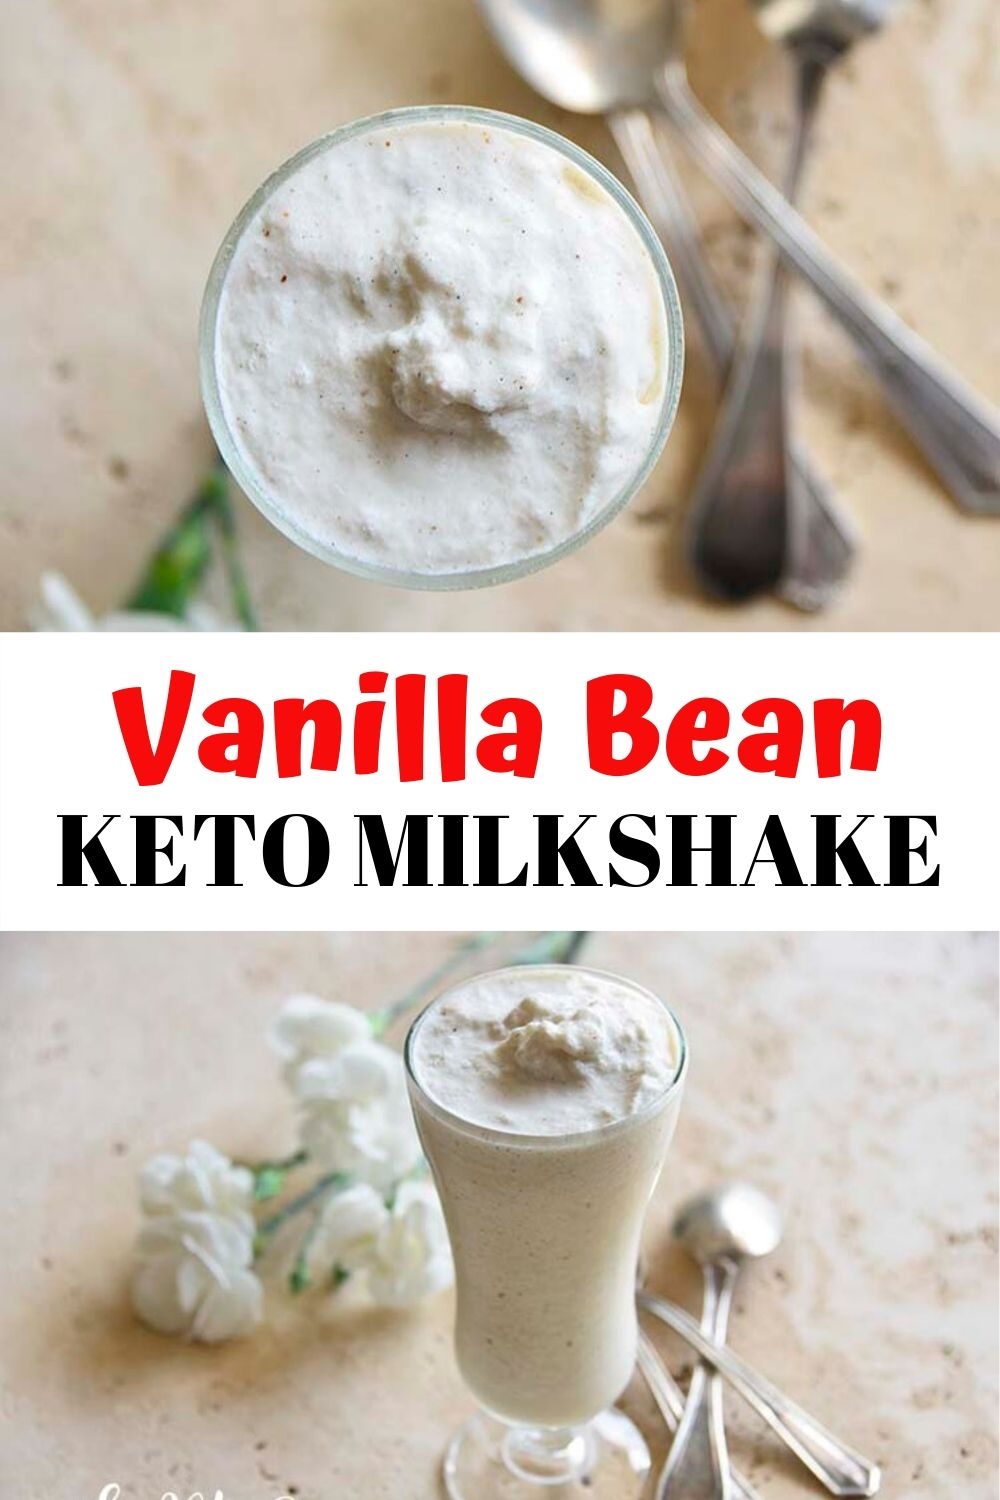 Vanilla Bean Keto Milkshake. Think you have to give up milkshakes for keto? Think again! Our homemade keto milkshake is rich in healthy fats and low in carbs. Those pretty little flecks of vanilla bean in this low carb milkshake tell you right away that you're going to get deep vanilla flavor! The toasted almonds are here to add a subtle hint of nutty base flavor without adding a lot of carbs.